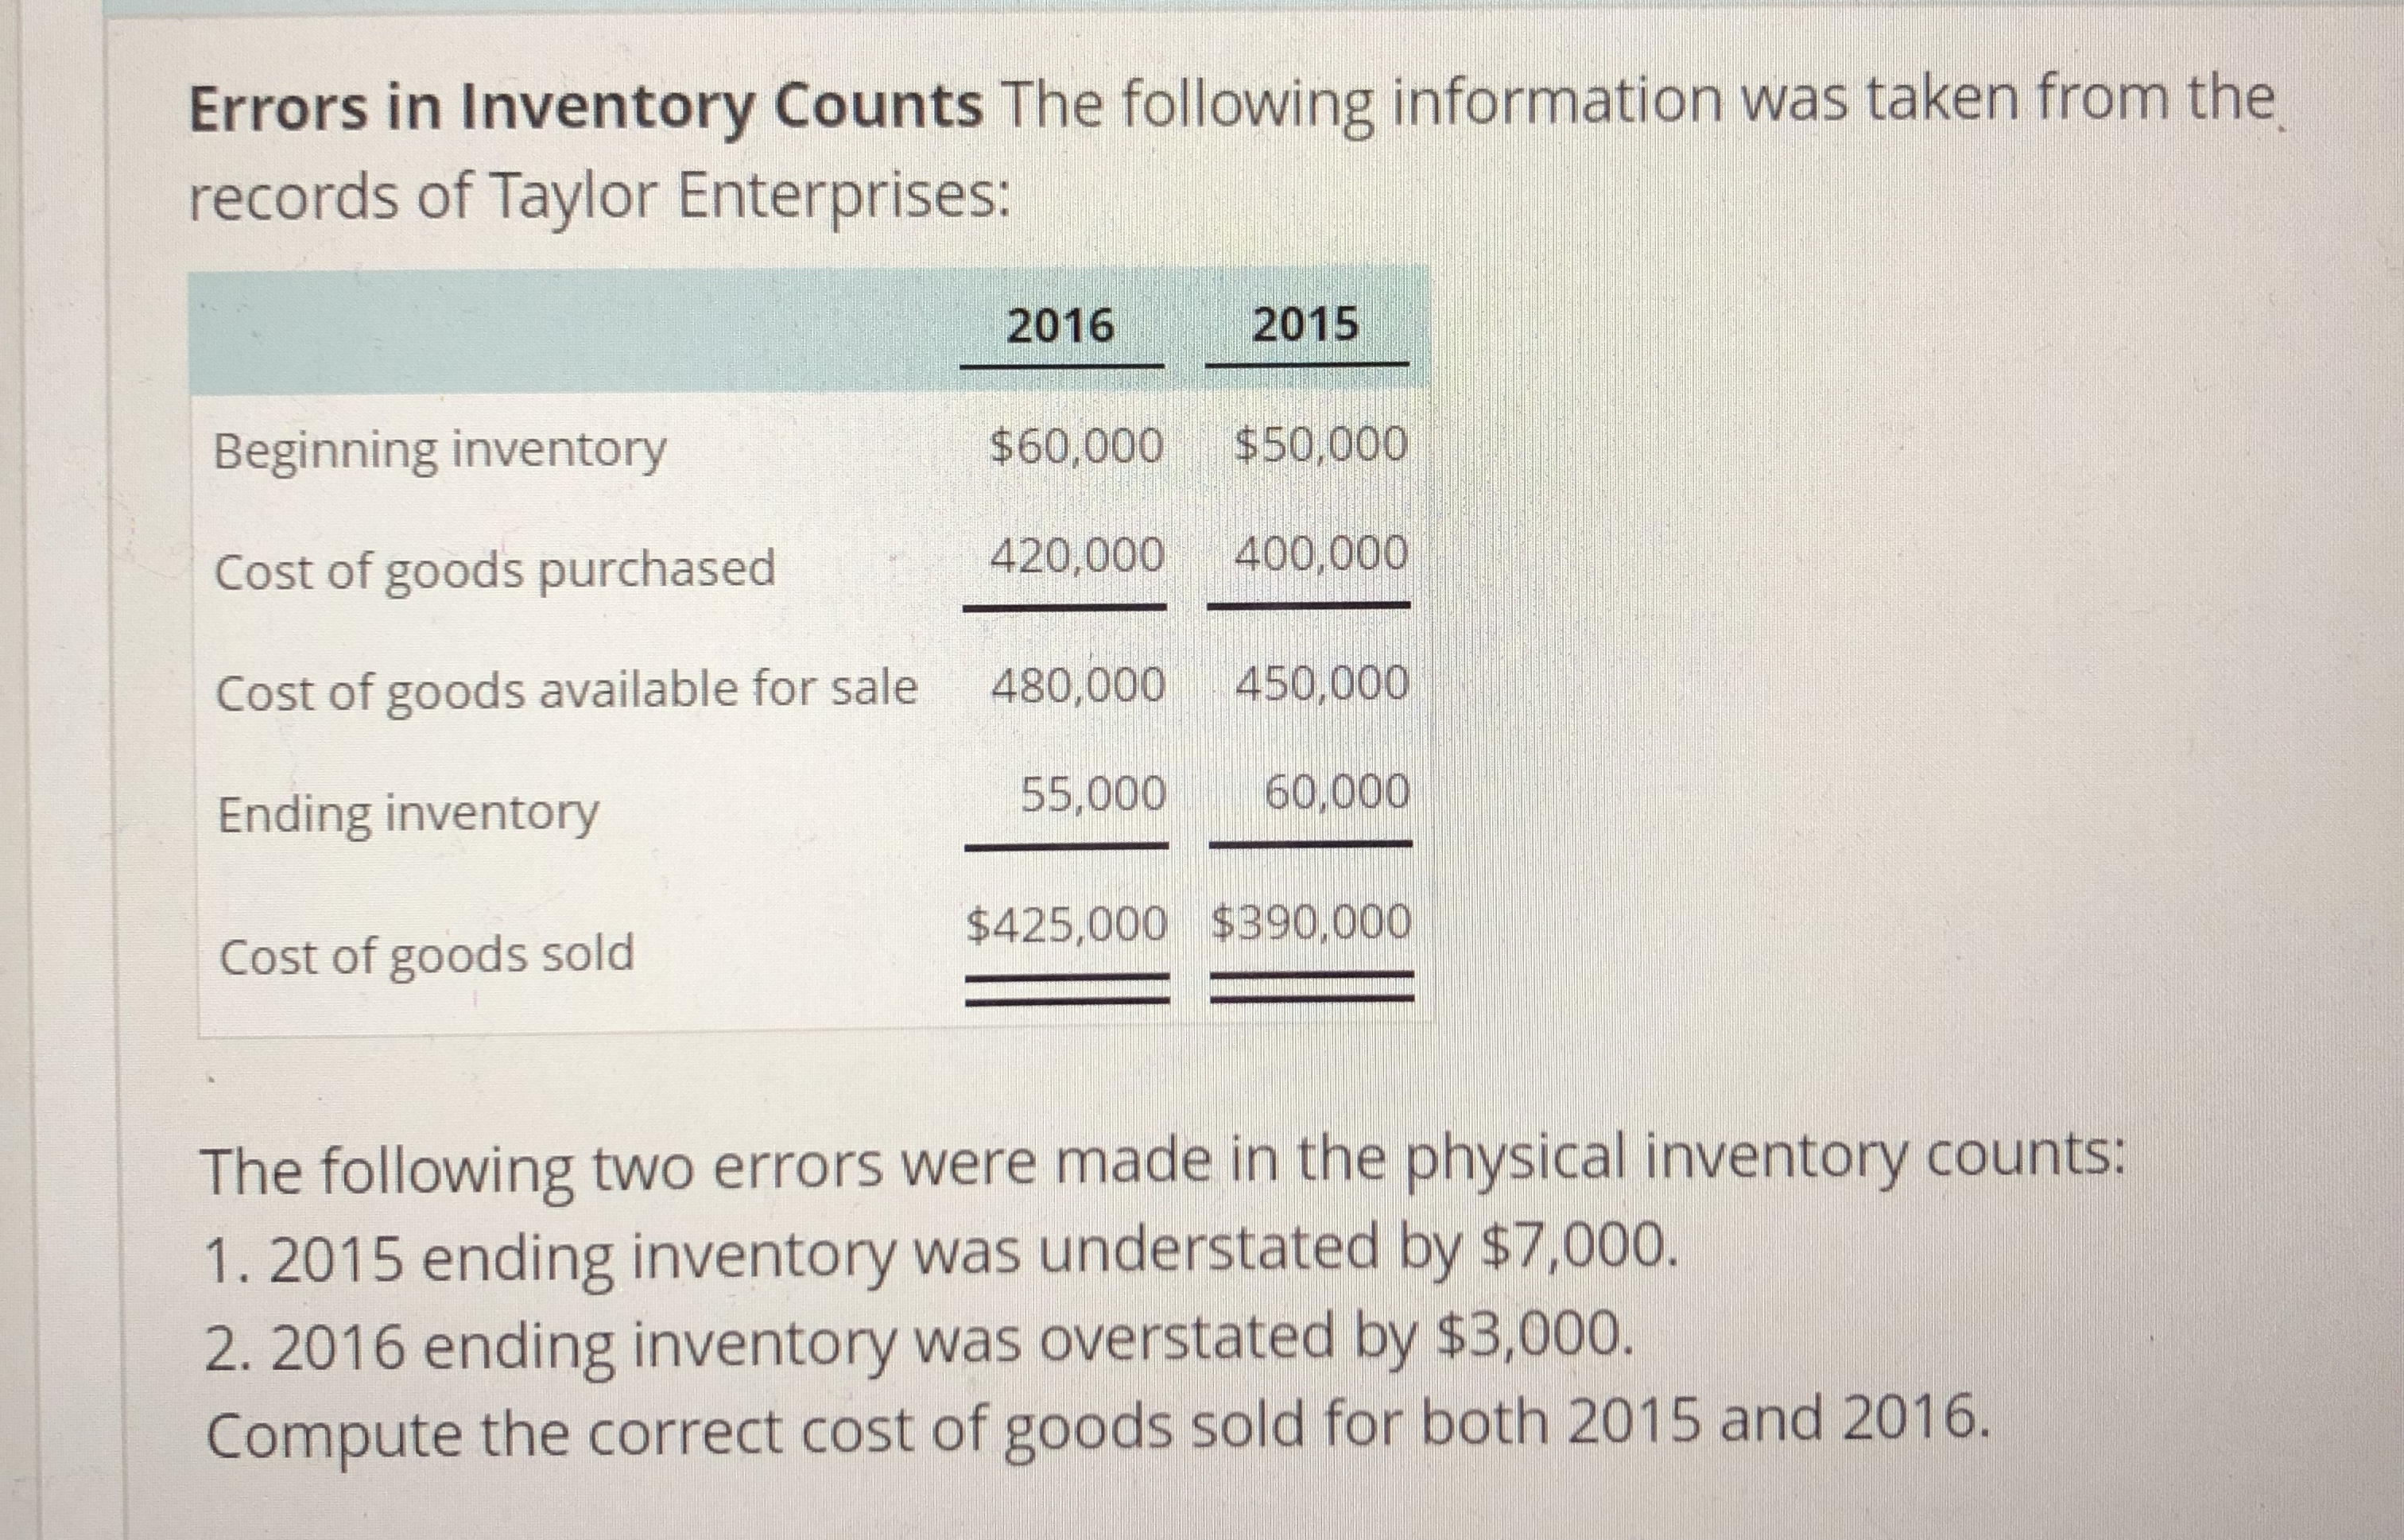 Errors in Inventory Counts The following information was taken from the records of Taylor Enterprises: 2016 2015 $60,000 $50,000 420,000 400,000 Cost of goods available for sale 480,000 450,000 55,000 60,000 $425,000 $390,000 Beginning inventory Cost of goods purchased Ending inventory Cost of goods sold The following two errors were made in the physical inventory counts: 1. 2015 ending inventory was understated by $7,000. 2. 2016 ending inventory was overstated by $3,000. Compute the correct cost of goods sold for both 2015 and 2016.